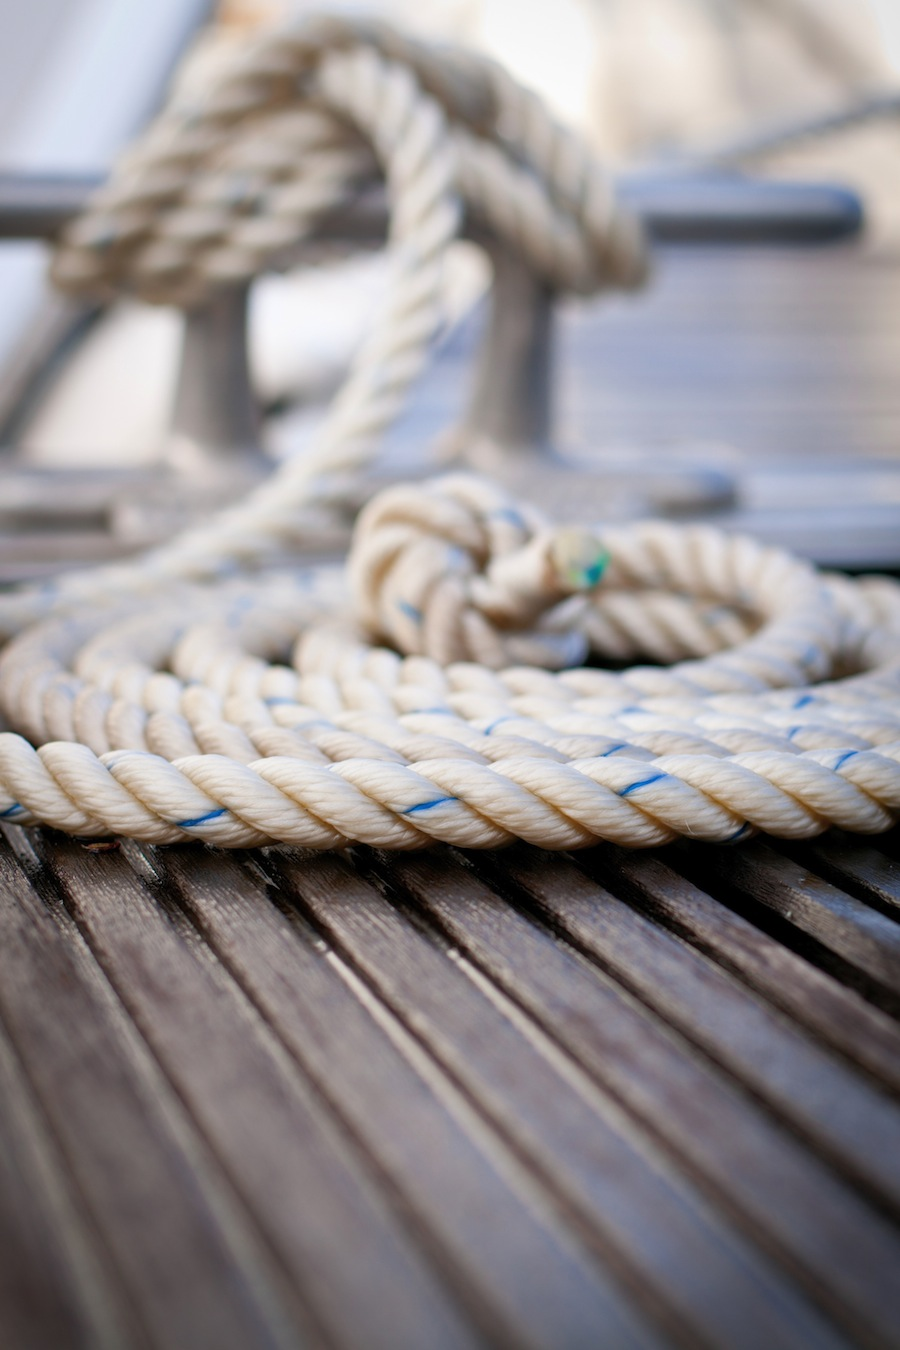 Tying Your Boat to a Dock